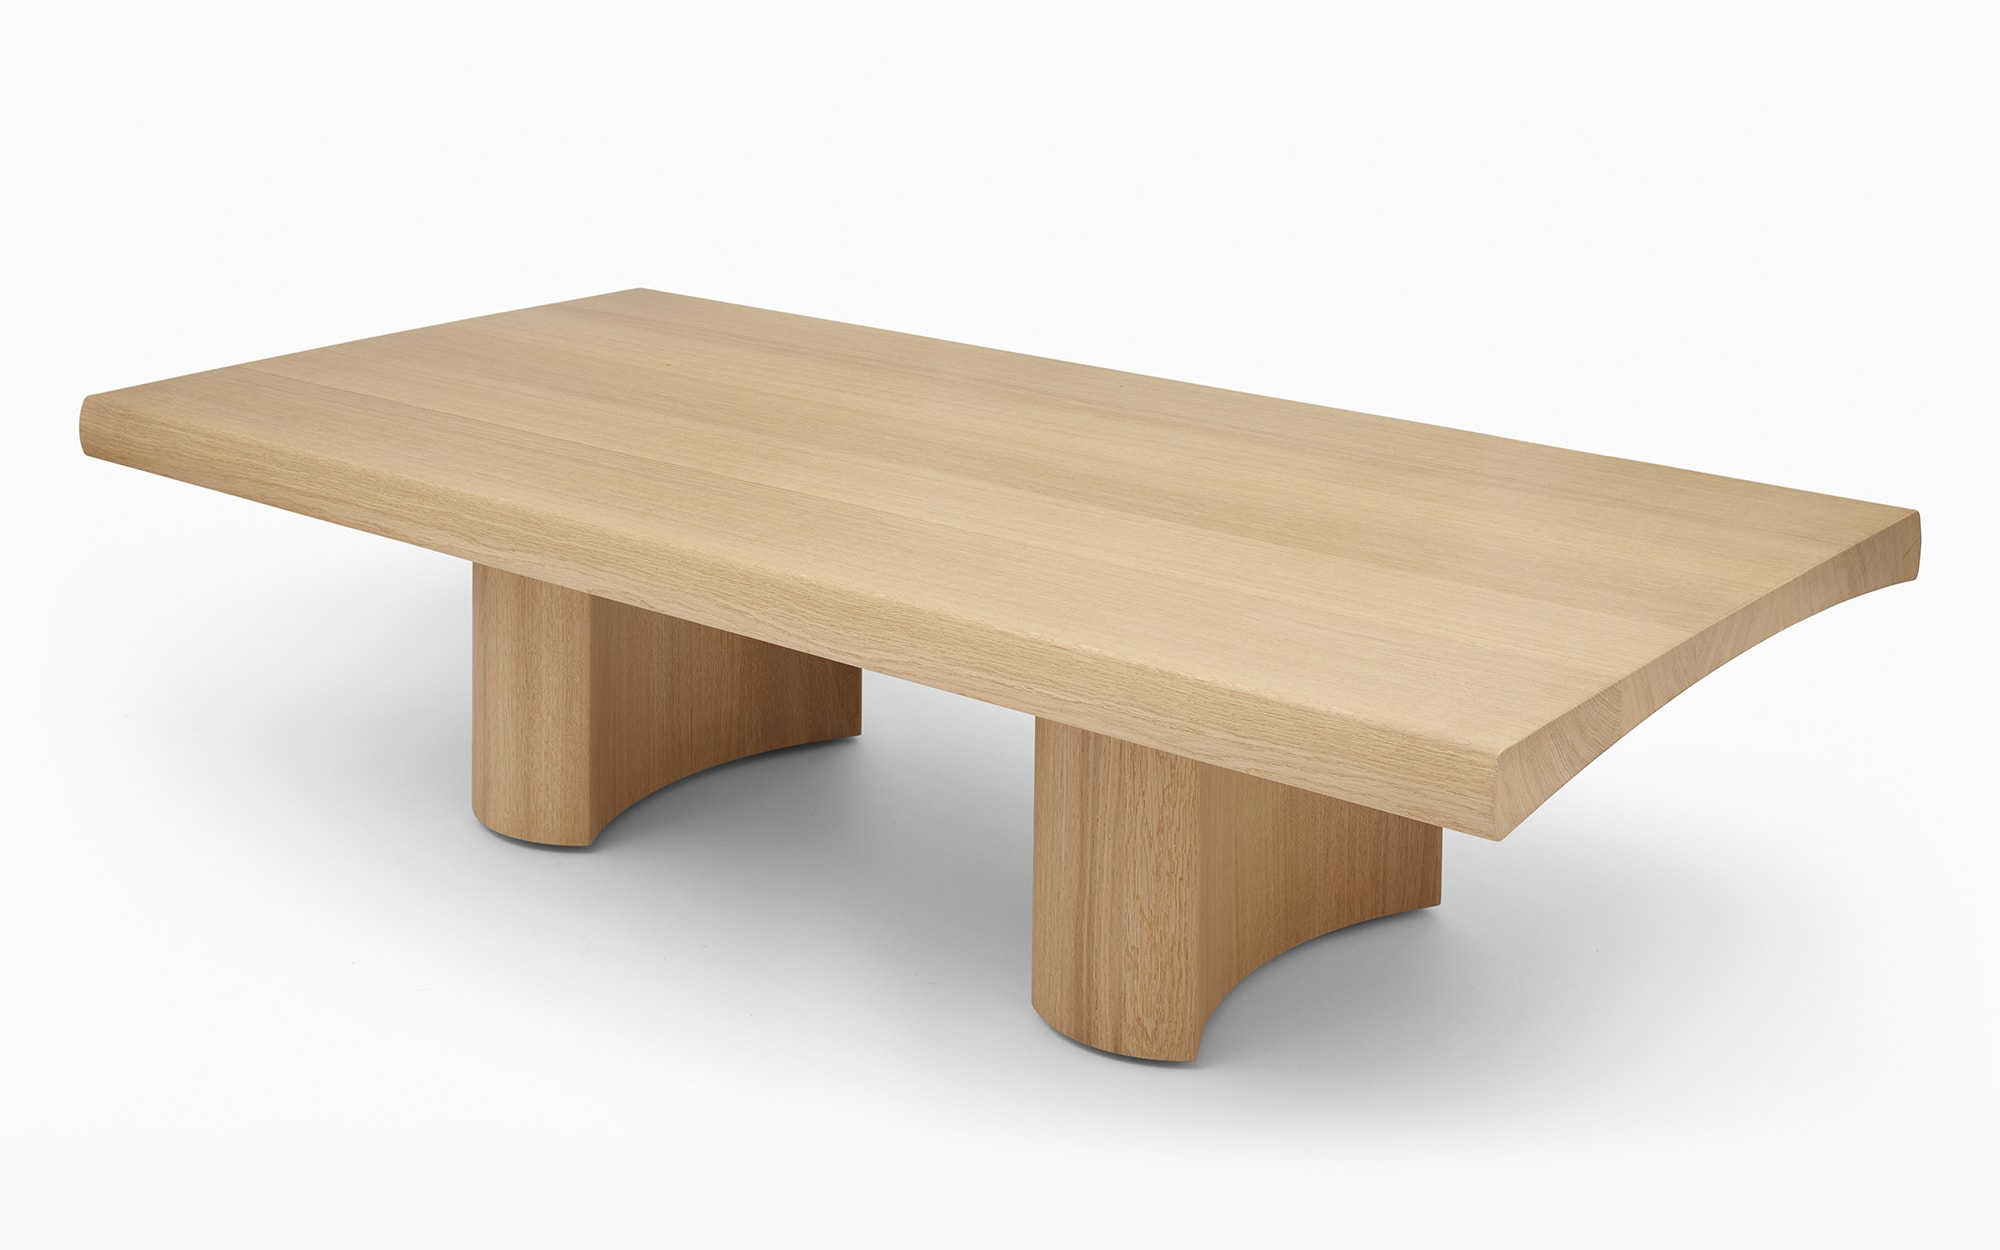 Barber & Osgerby Hakone Coffee table